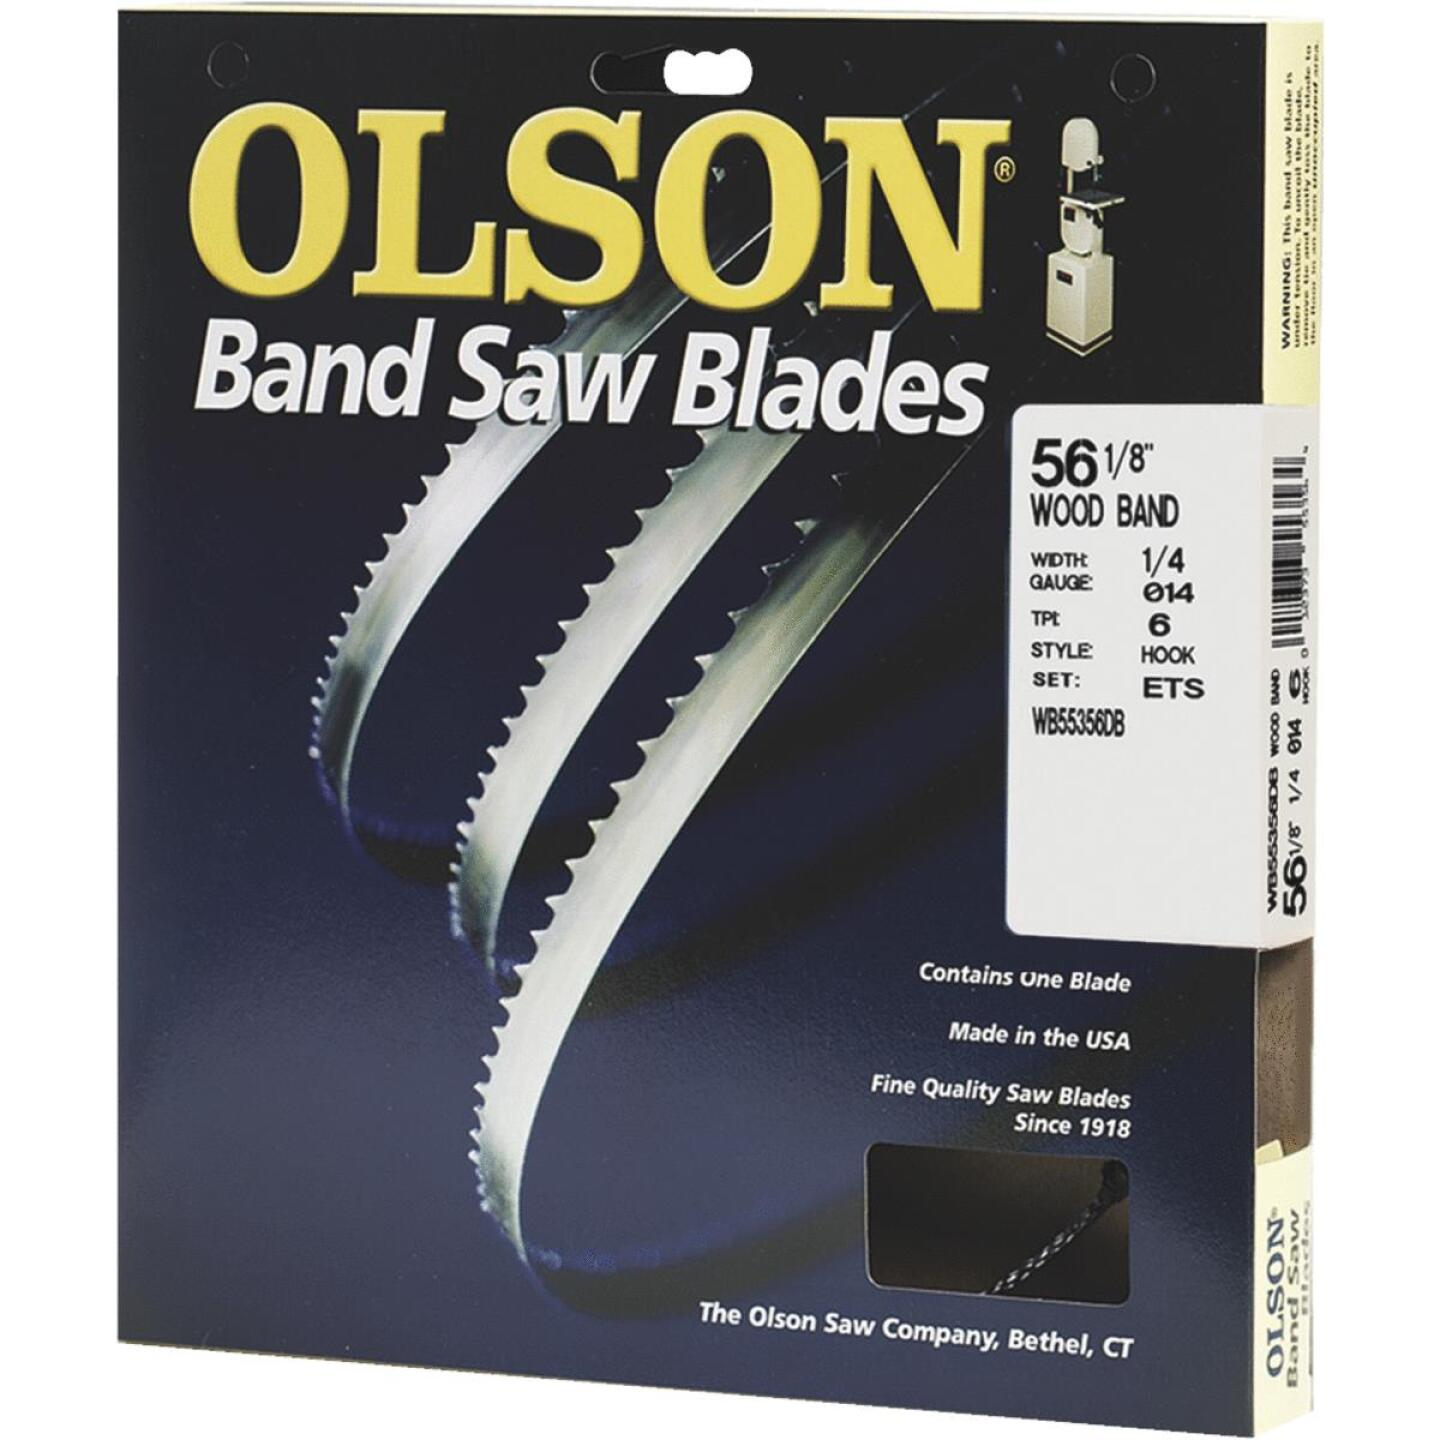 Olson 56-1/8 In. x 1/4 In. 6 TPI Hook Wood Cutting Band Saw Blade Image 1